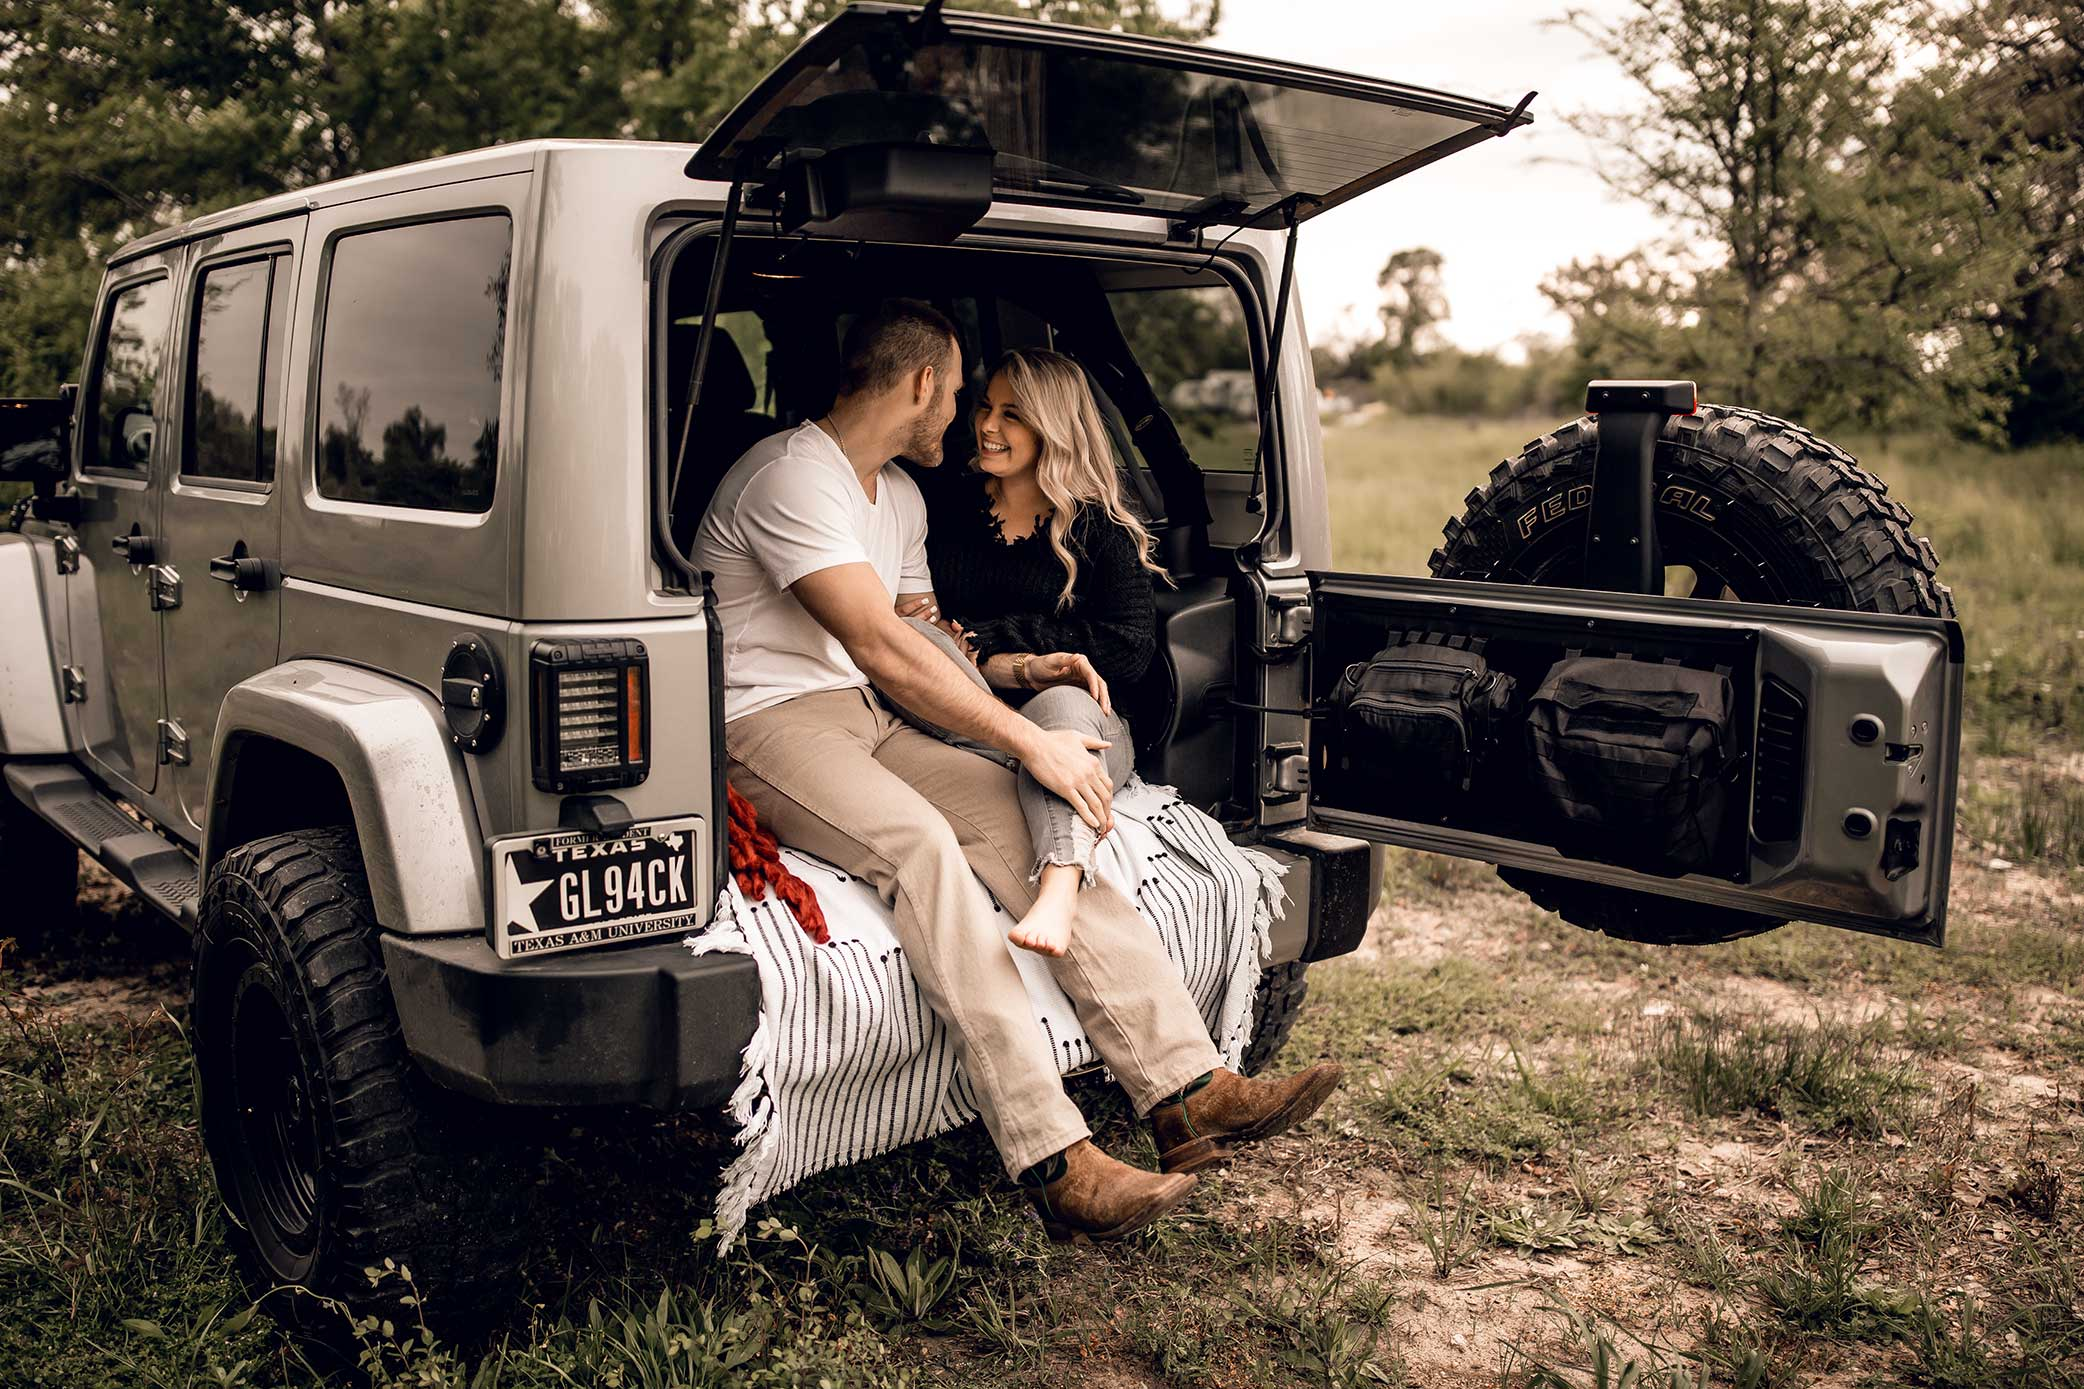 shelby-schiller-photography-lifestyle-couples-remi-colt-outdoor-jeep-adventure-2.jpg